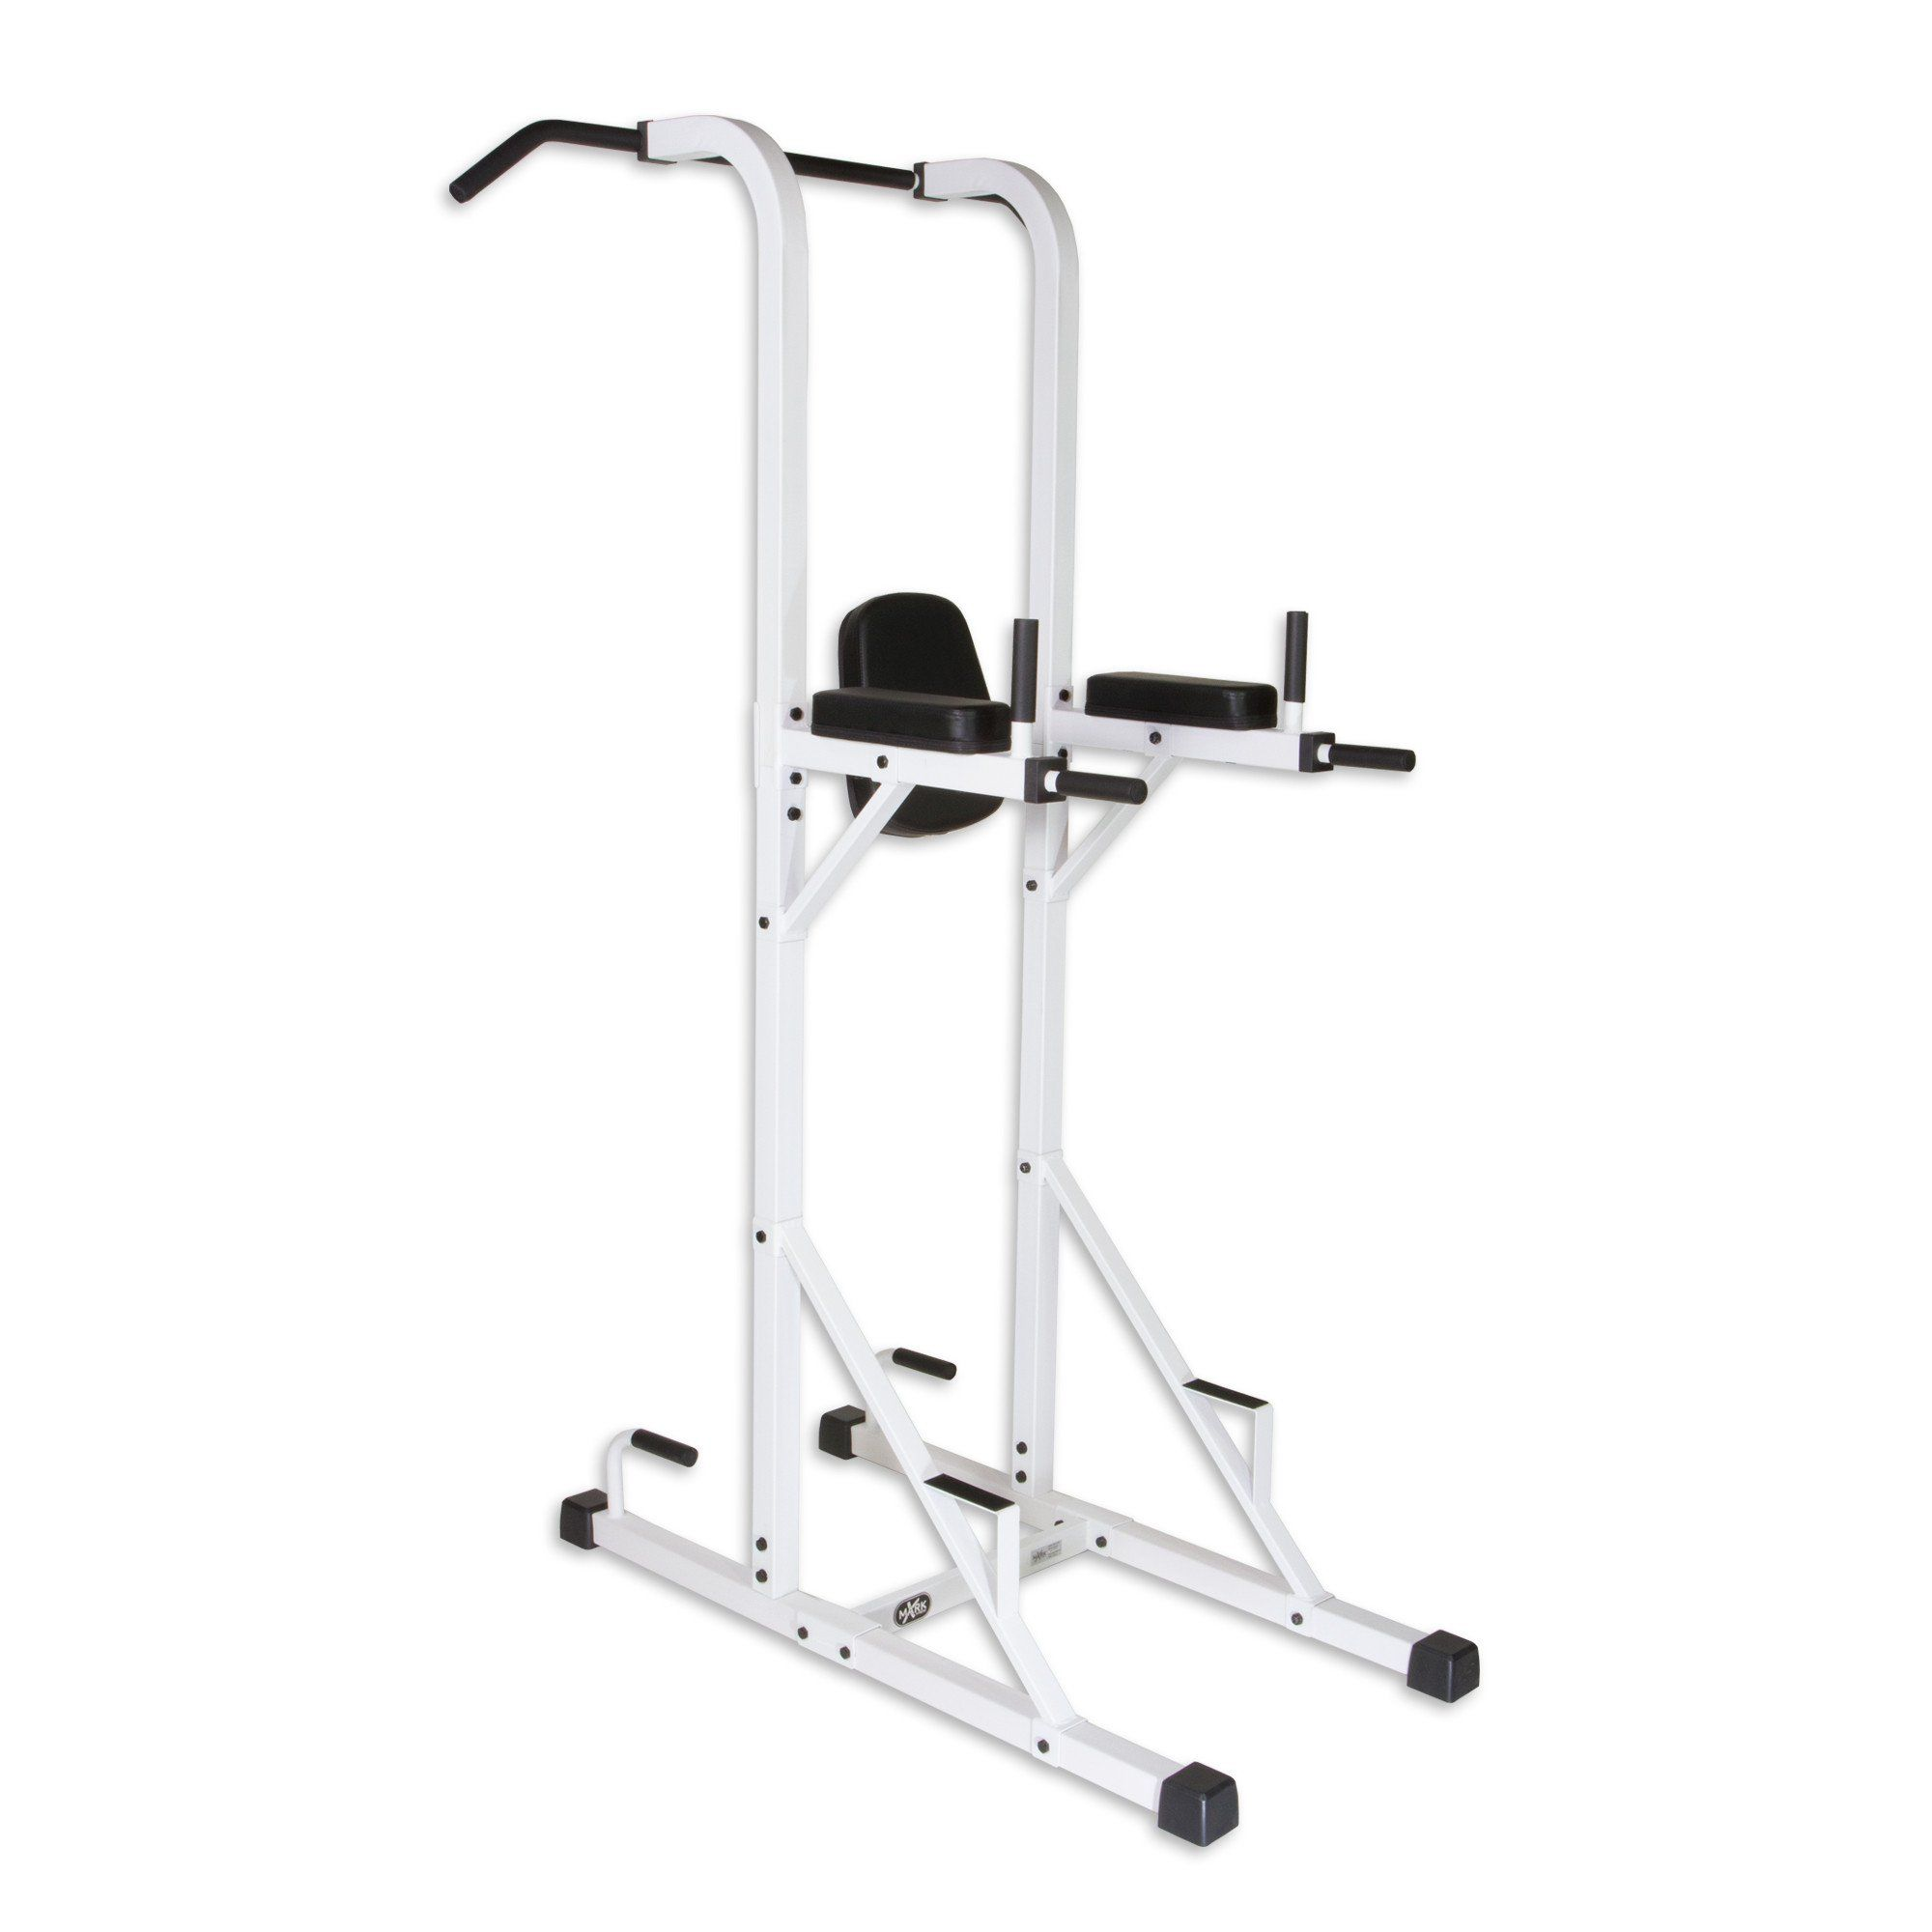 Xmark Fitness Multi Function Power Tower With Vertical Knee Raise Push Up Bar Press Handles Grey Dip Station